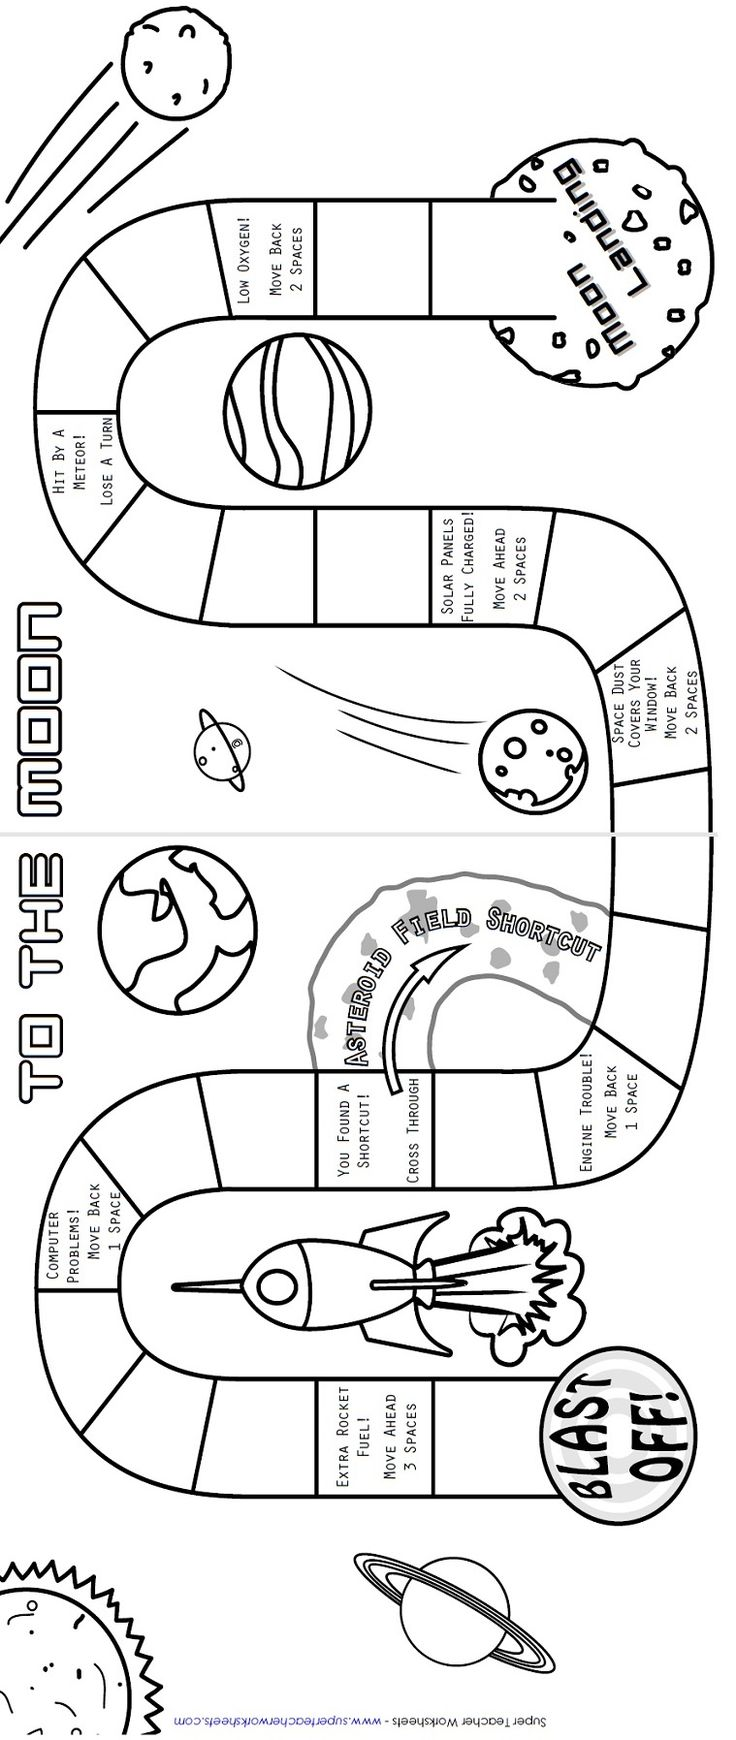 Worksheets Solar System Worksheet best 25 solar system worksheets ideas on pinterest students will have a blast learning facts about the with this board game